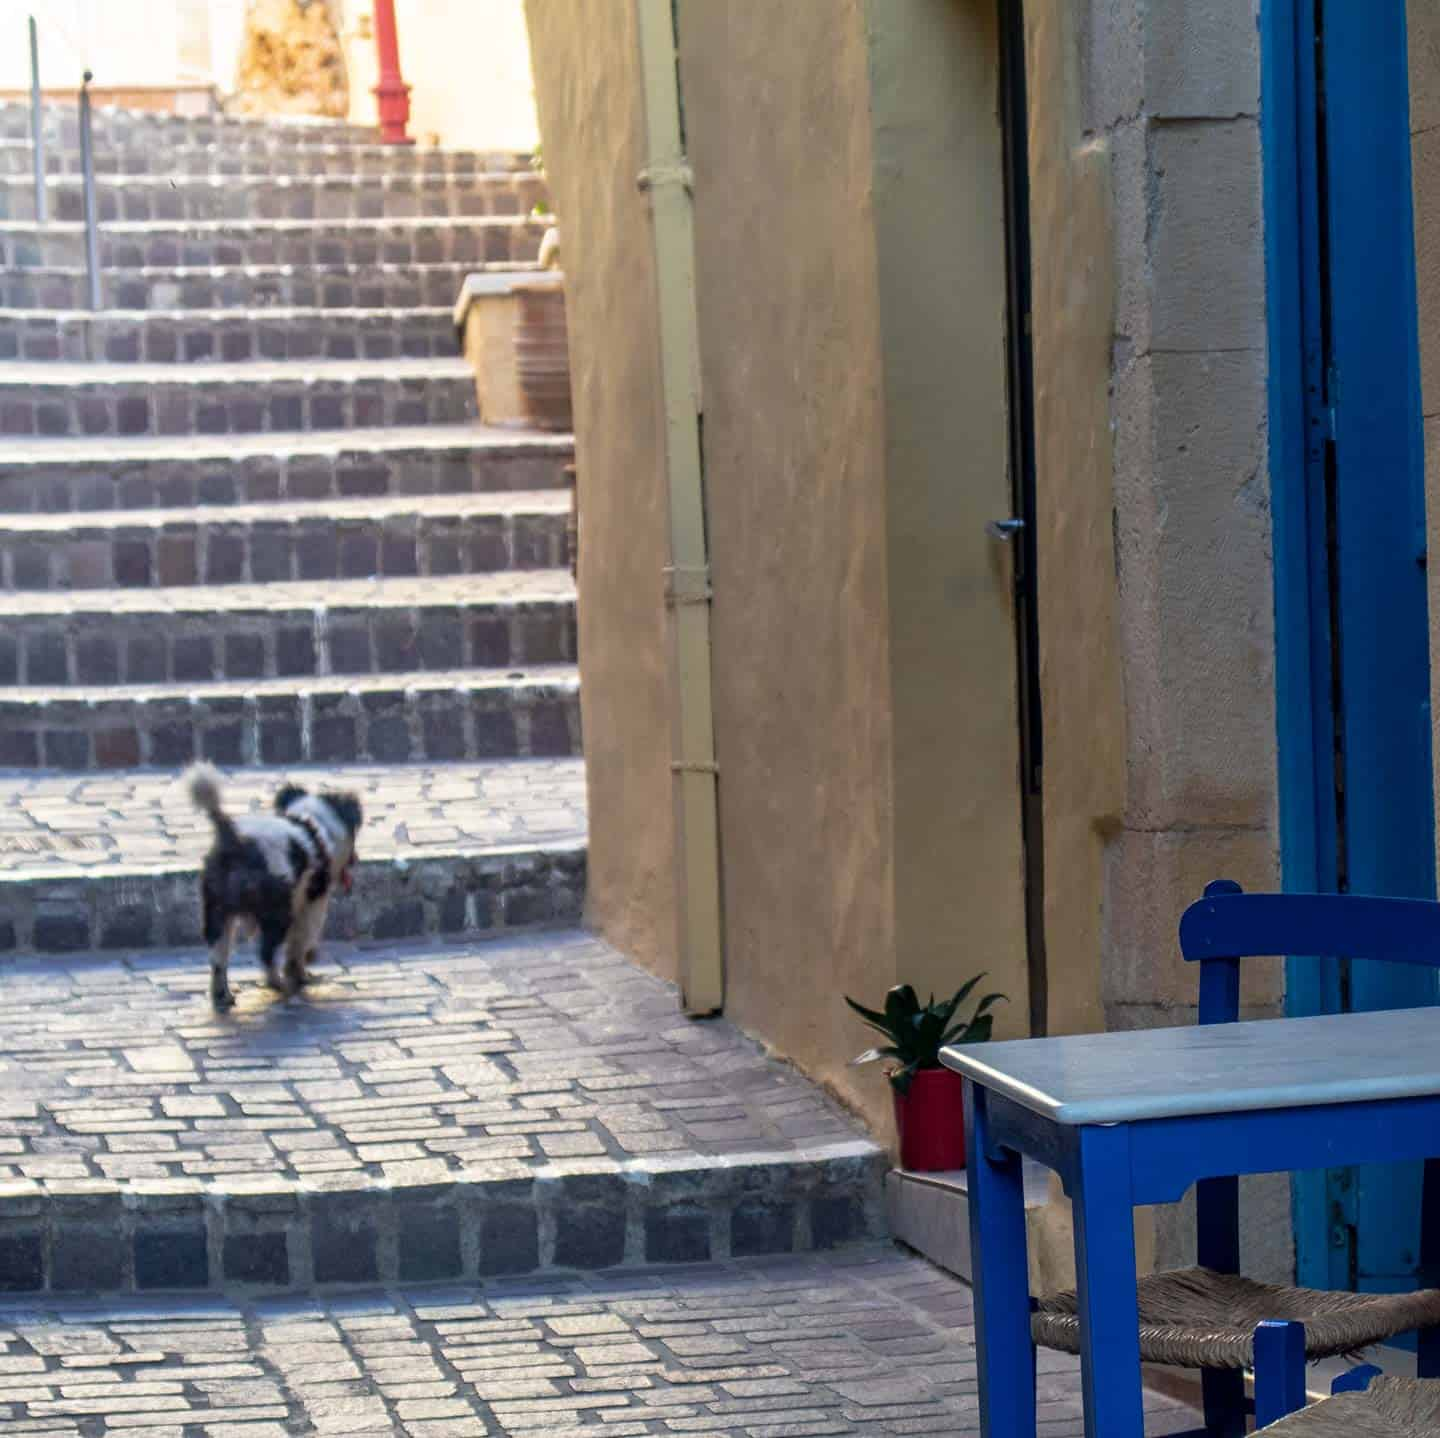 Image of a dog walking up a stepped street in Chania Greece